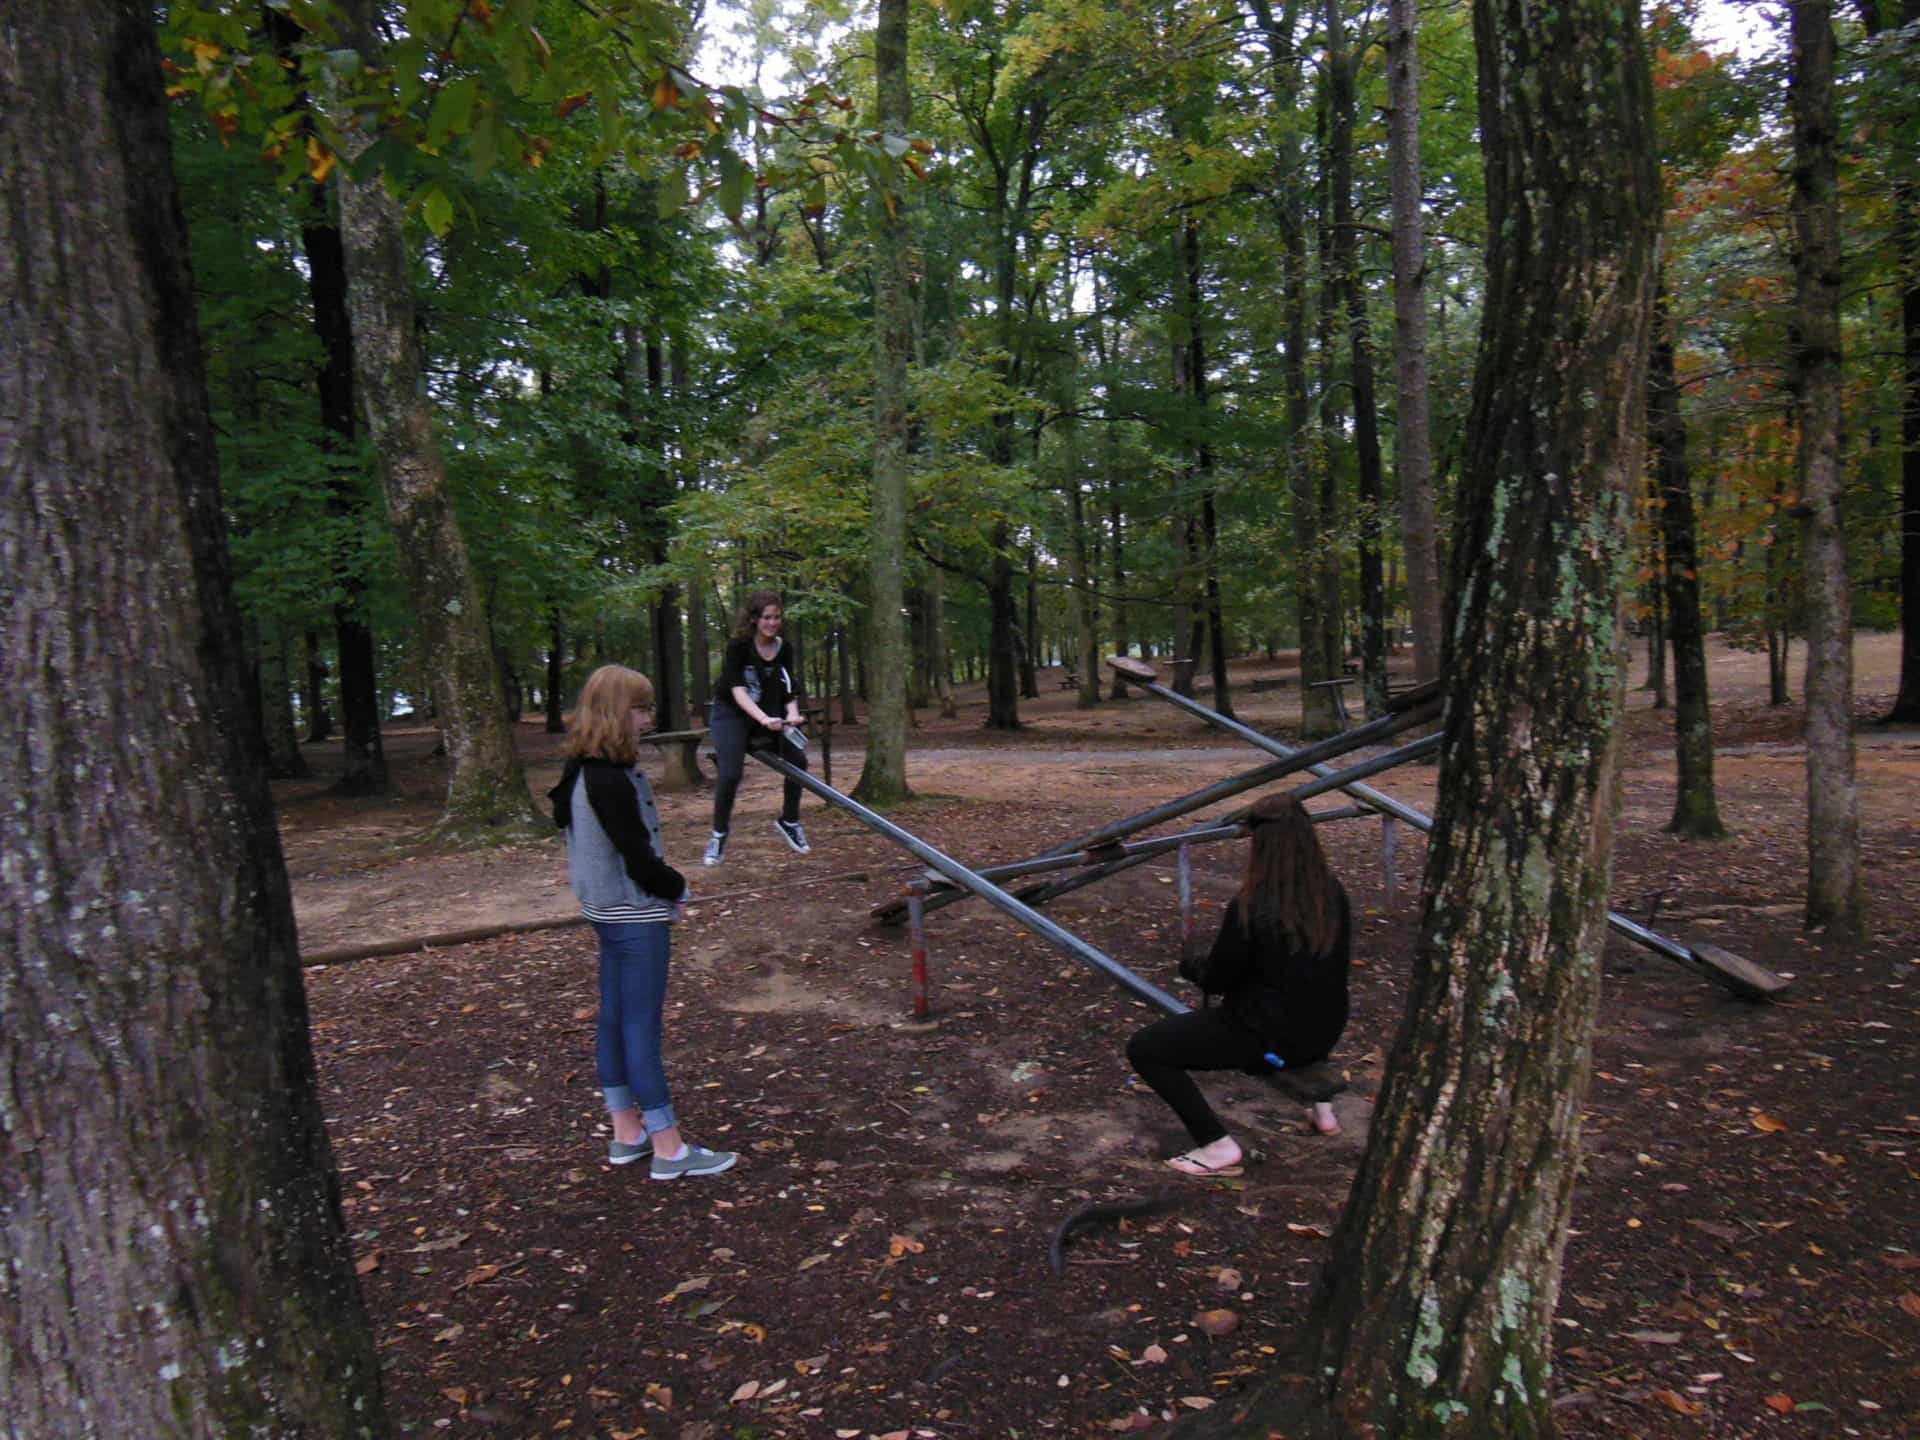 Monte Sano State Park - Teeter Totters